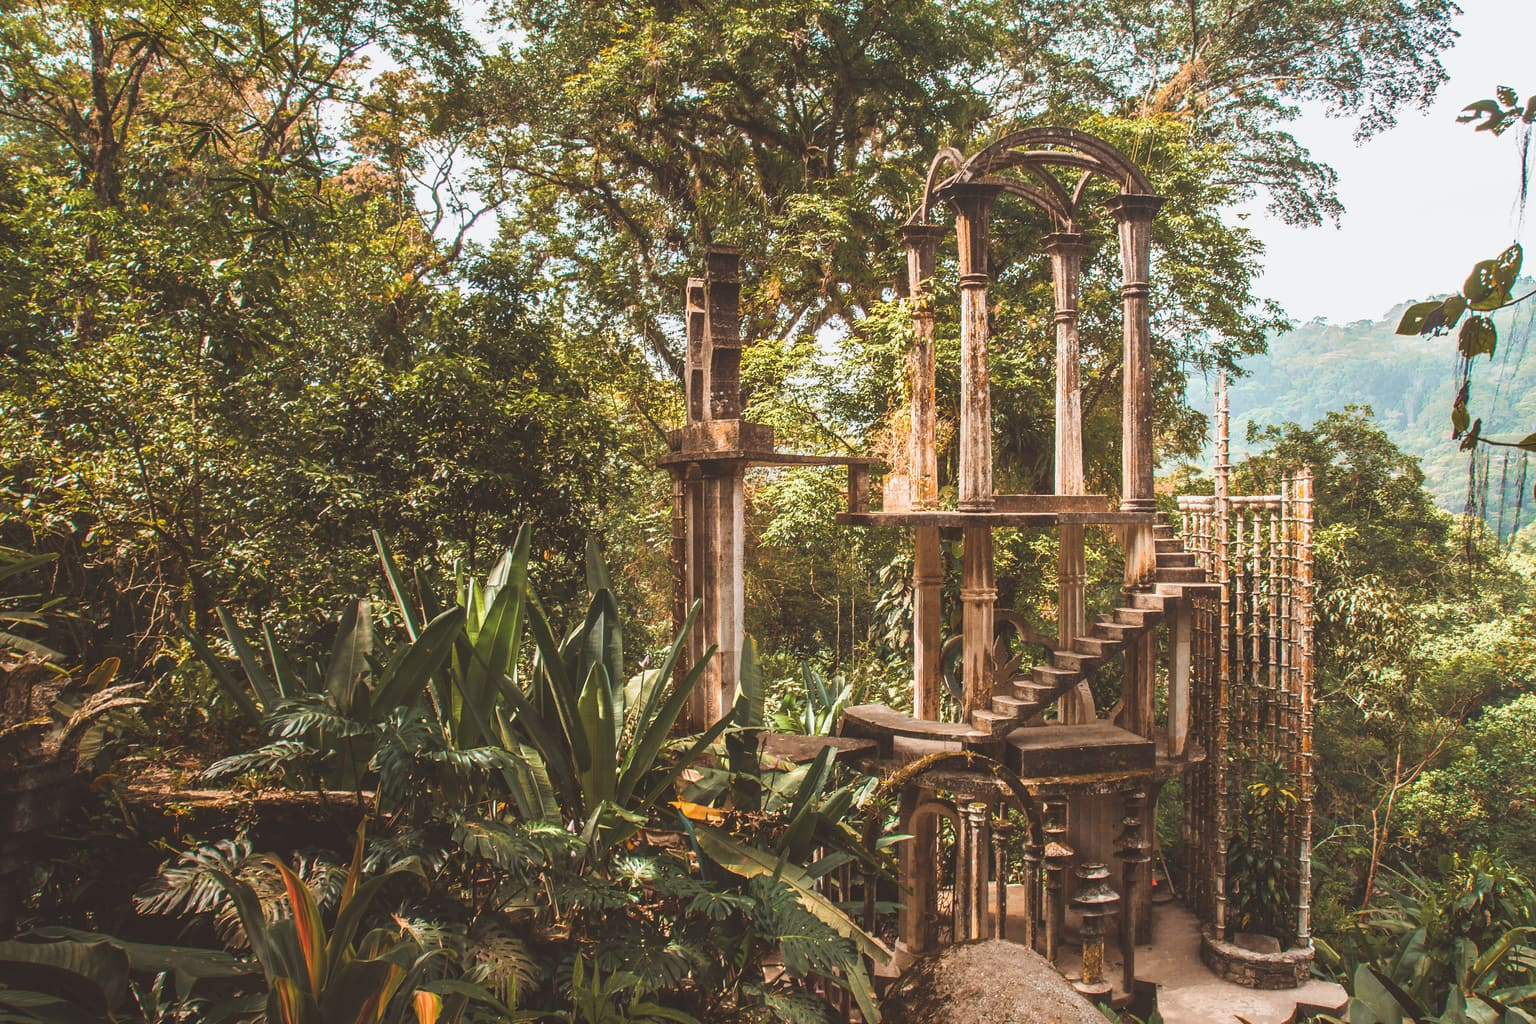 Visiting Las Pozas: Surrealist Garden in Mexico | Once Upon A Journey